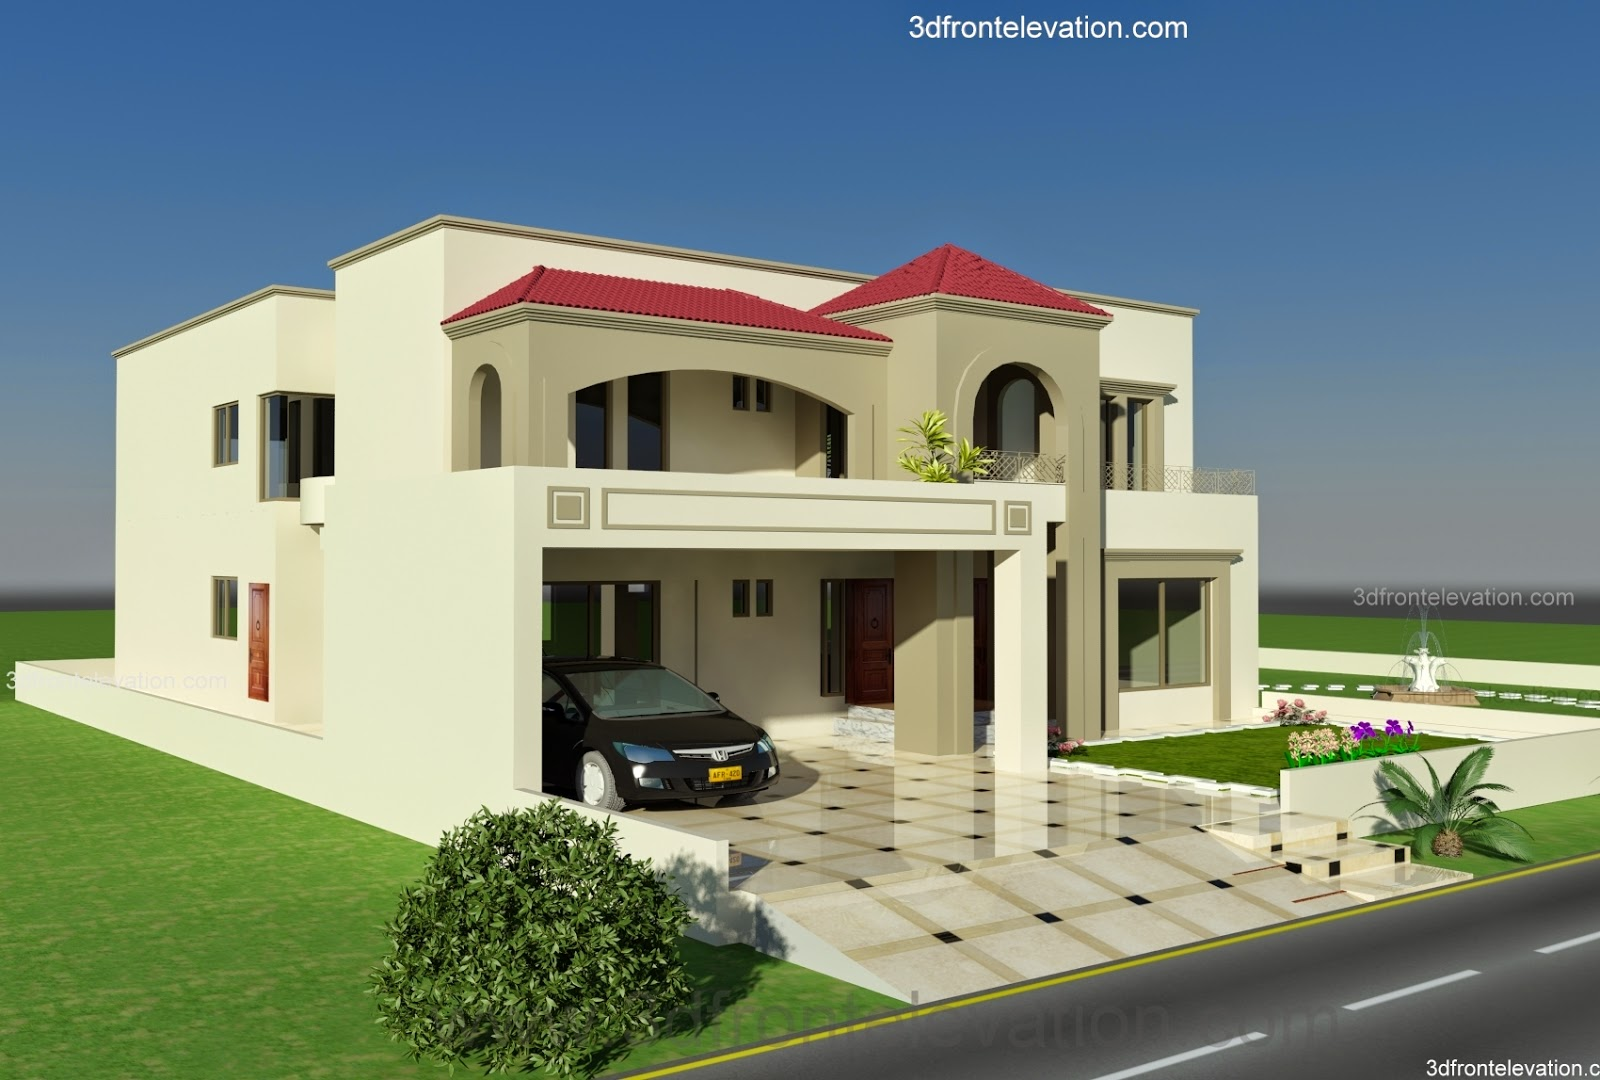 1%2BKanal%2BHouse%2BPlan%2BPunjab%2BHousing%2BSociety%2B(2) - Get Small Farmhouse Design In Punjab Images